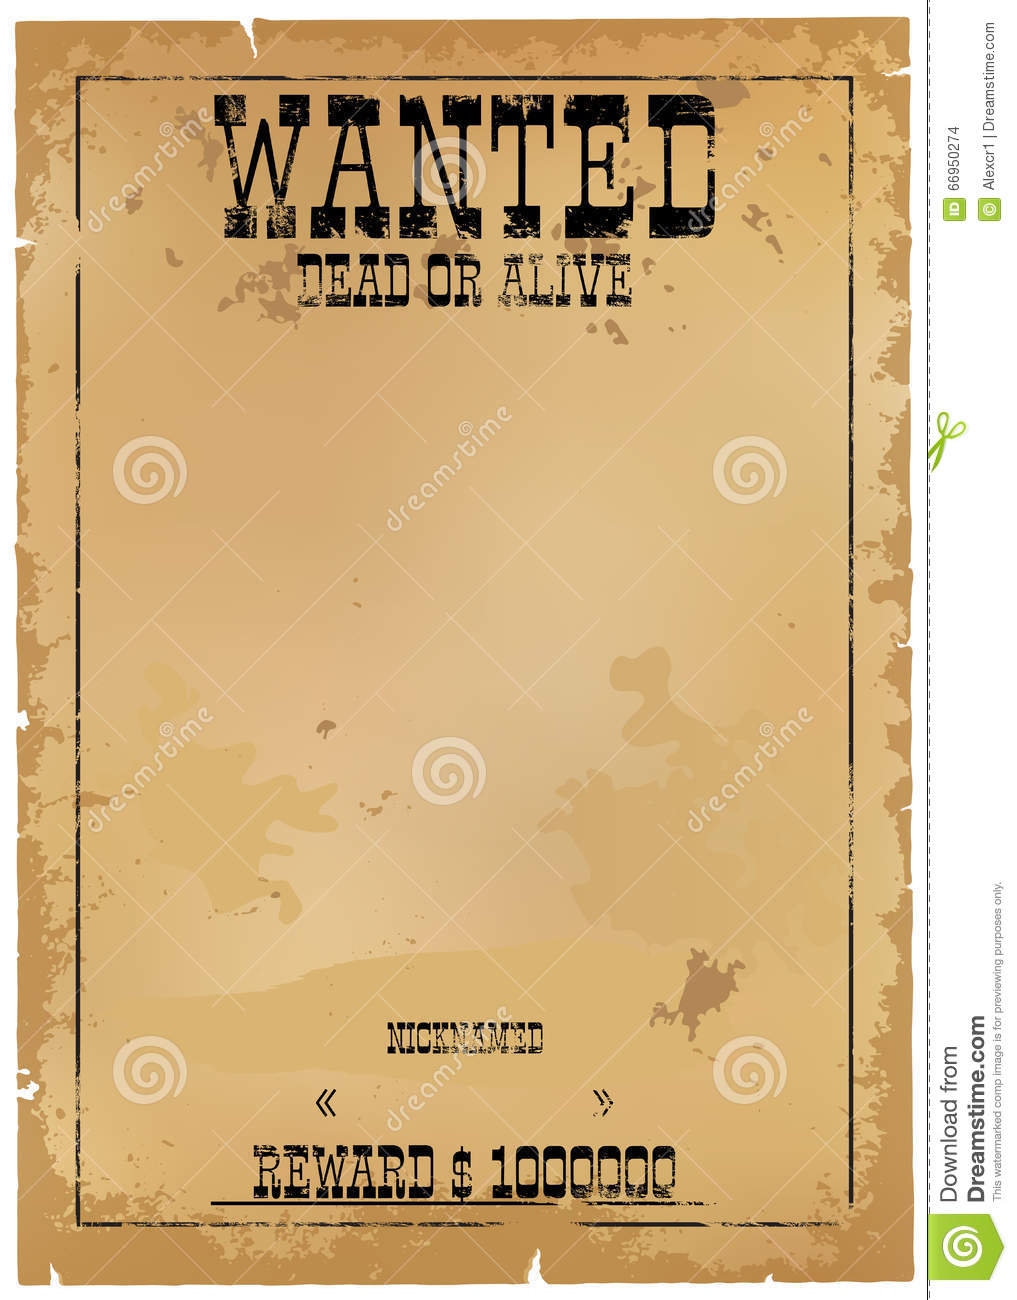 Template Is Wanted Dead Or Alive. Stock Vector - Image ...